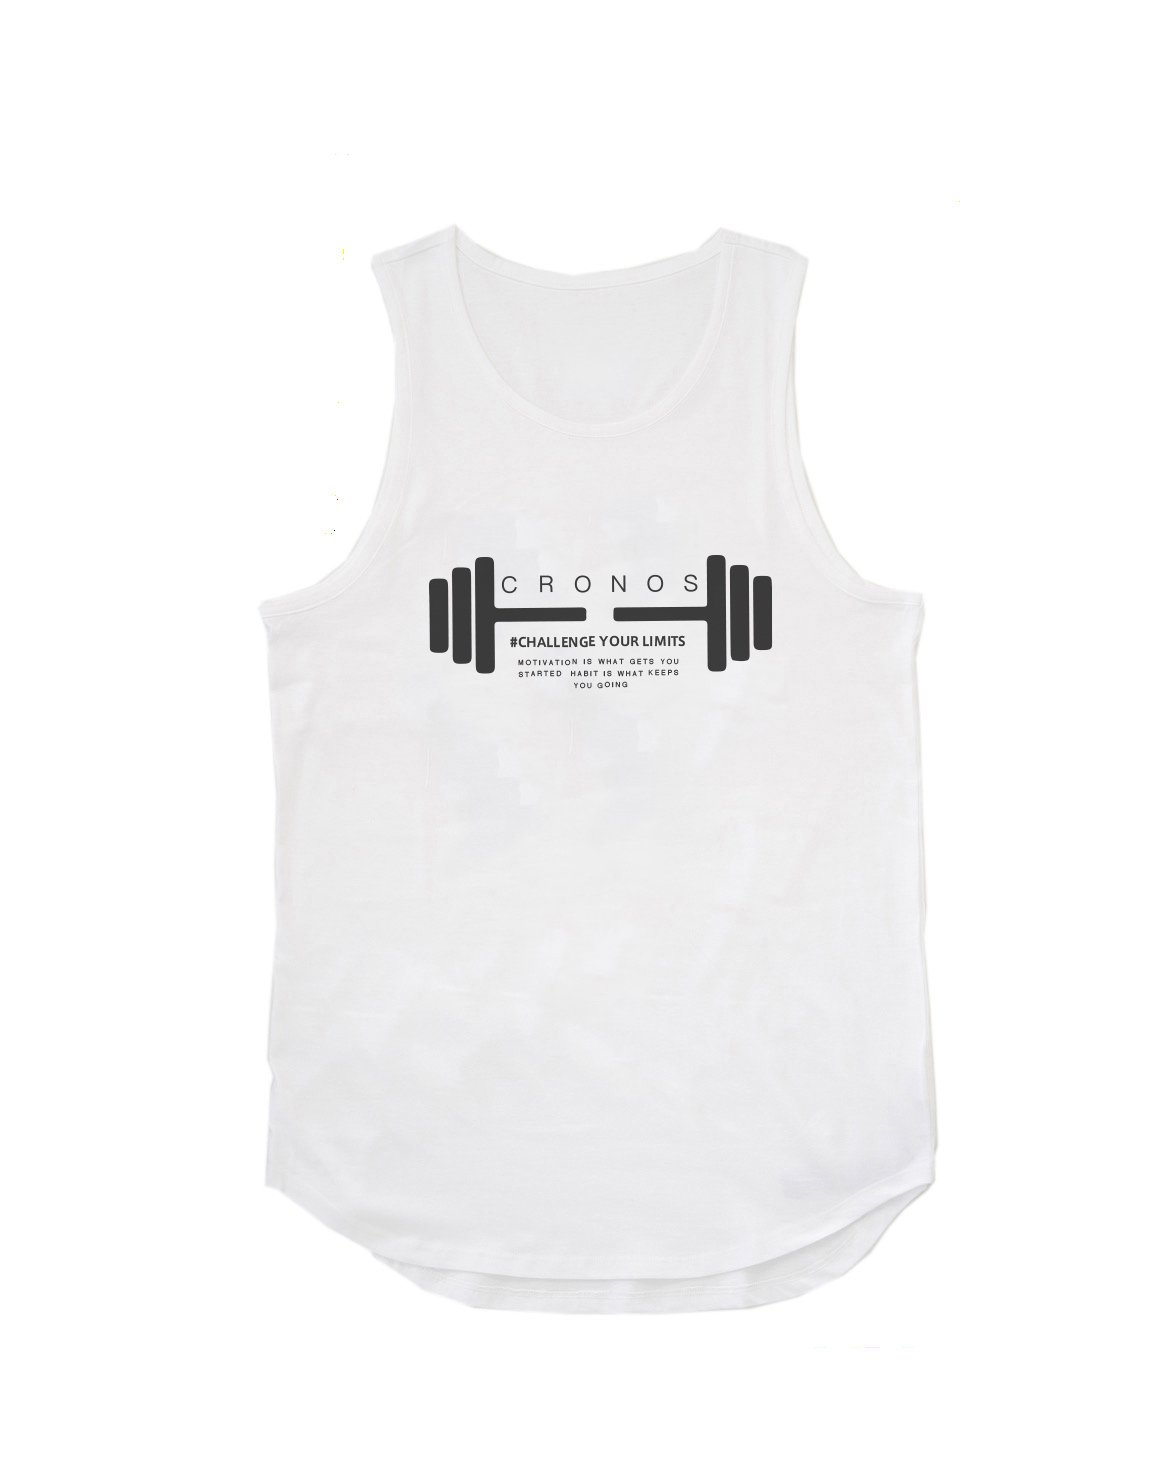 <img class='new_mark_img1' src='https://img.shop-pro.jp/img/new/icons1.gif' style='border:none;display:inline;margin:0px;padding:0px;width:auto;' />CRONOS DUMBBELL LOGO TANK TOP【WHITE】